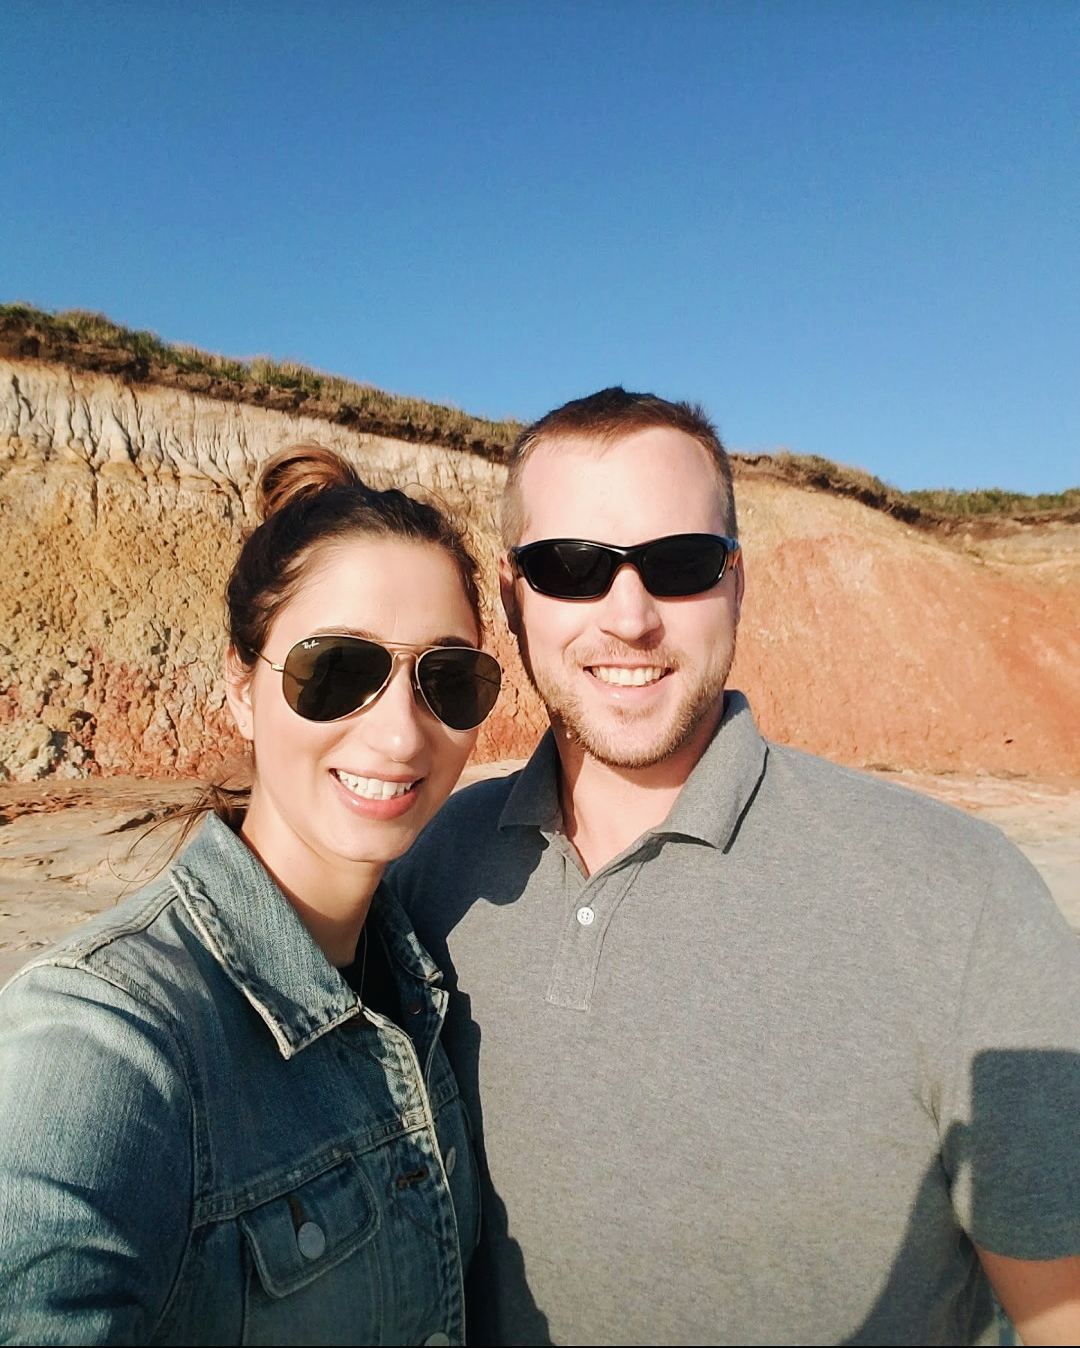 Lance and I at Aquinnah Cliffs in Martha's Vineyard